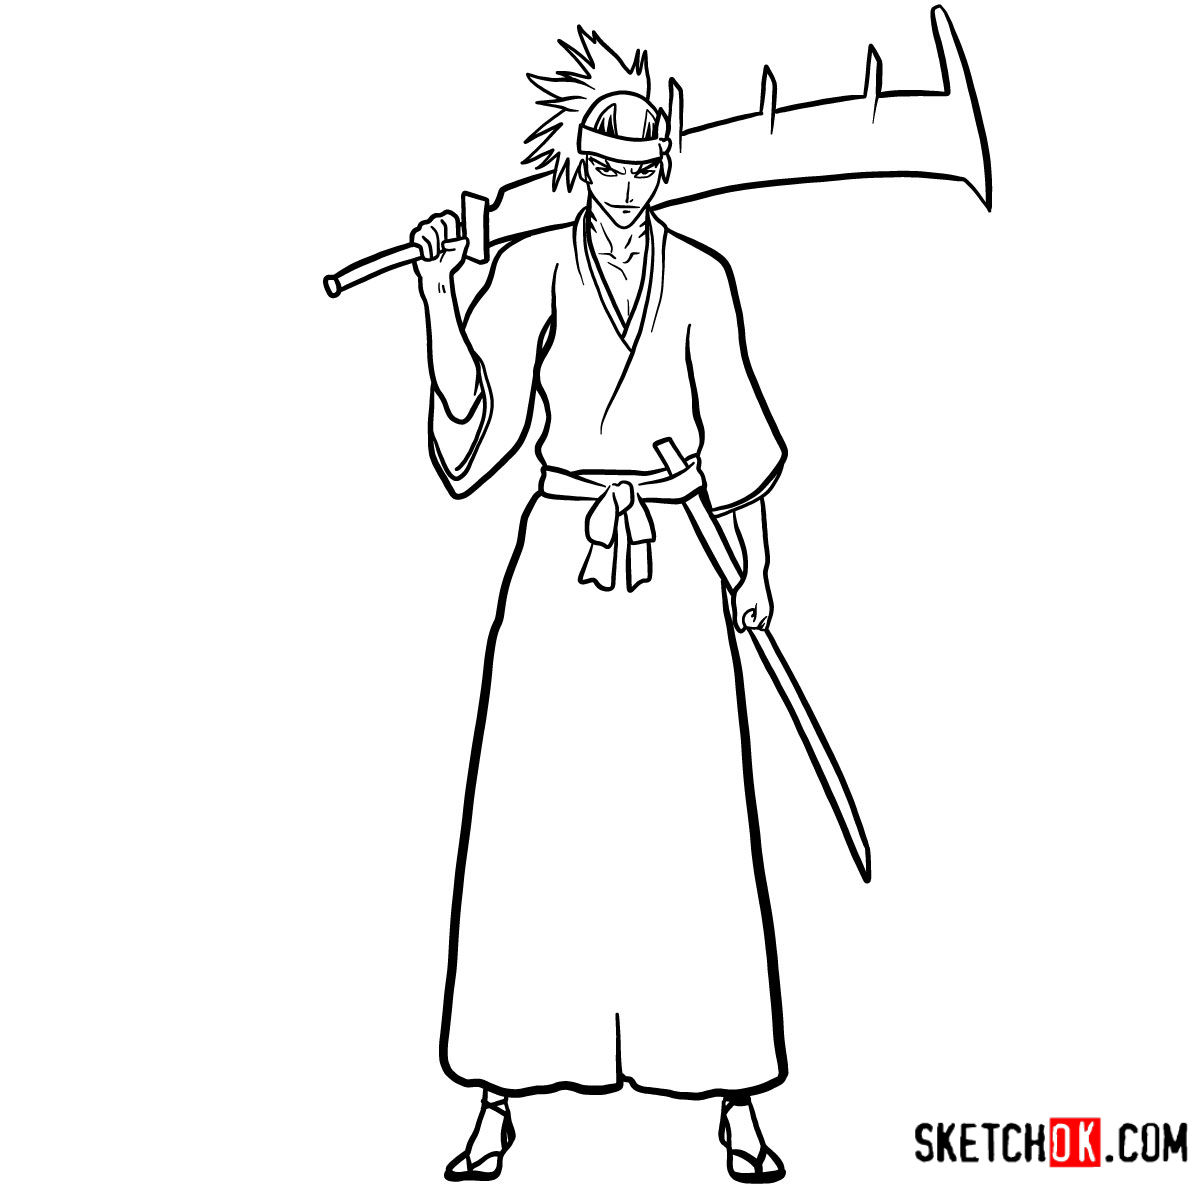 How to draw Renji Abarai full growth